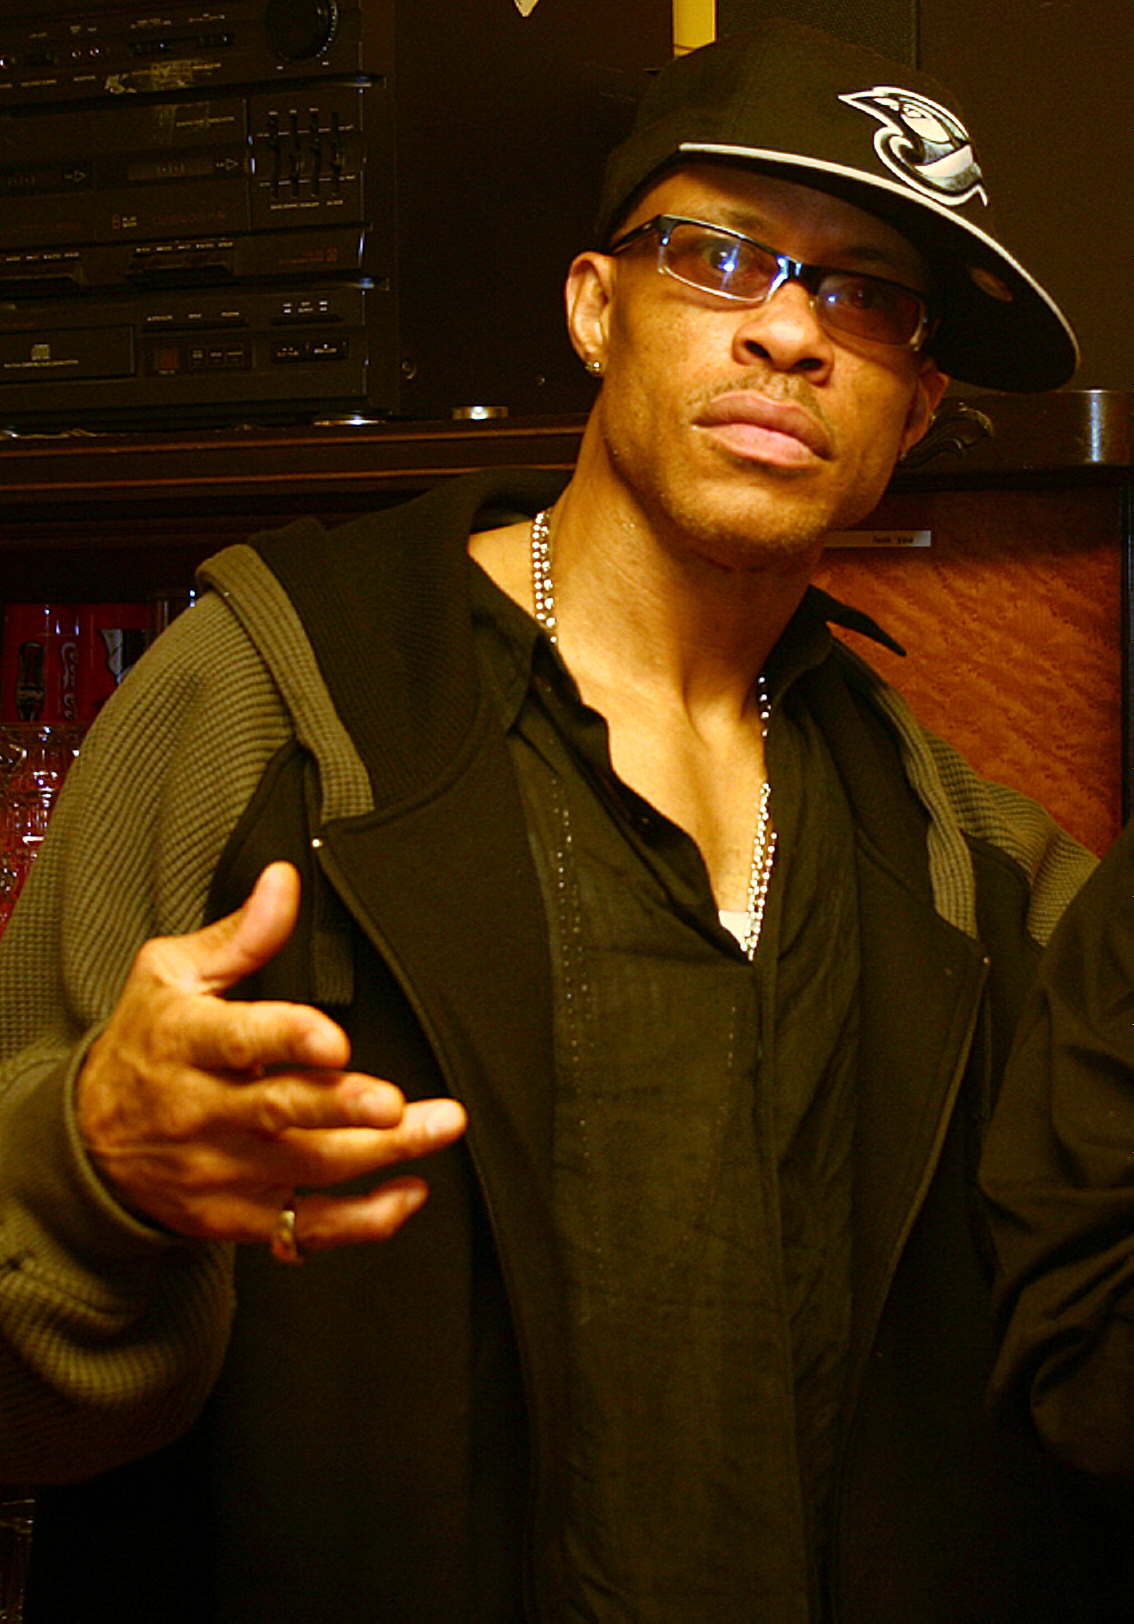 File:Guru (rapper).jpg - Wikipedia, the free encyclopedia